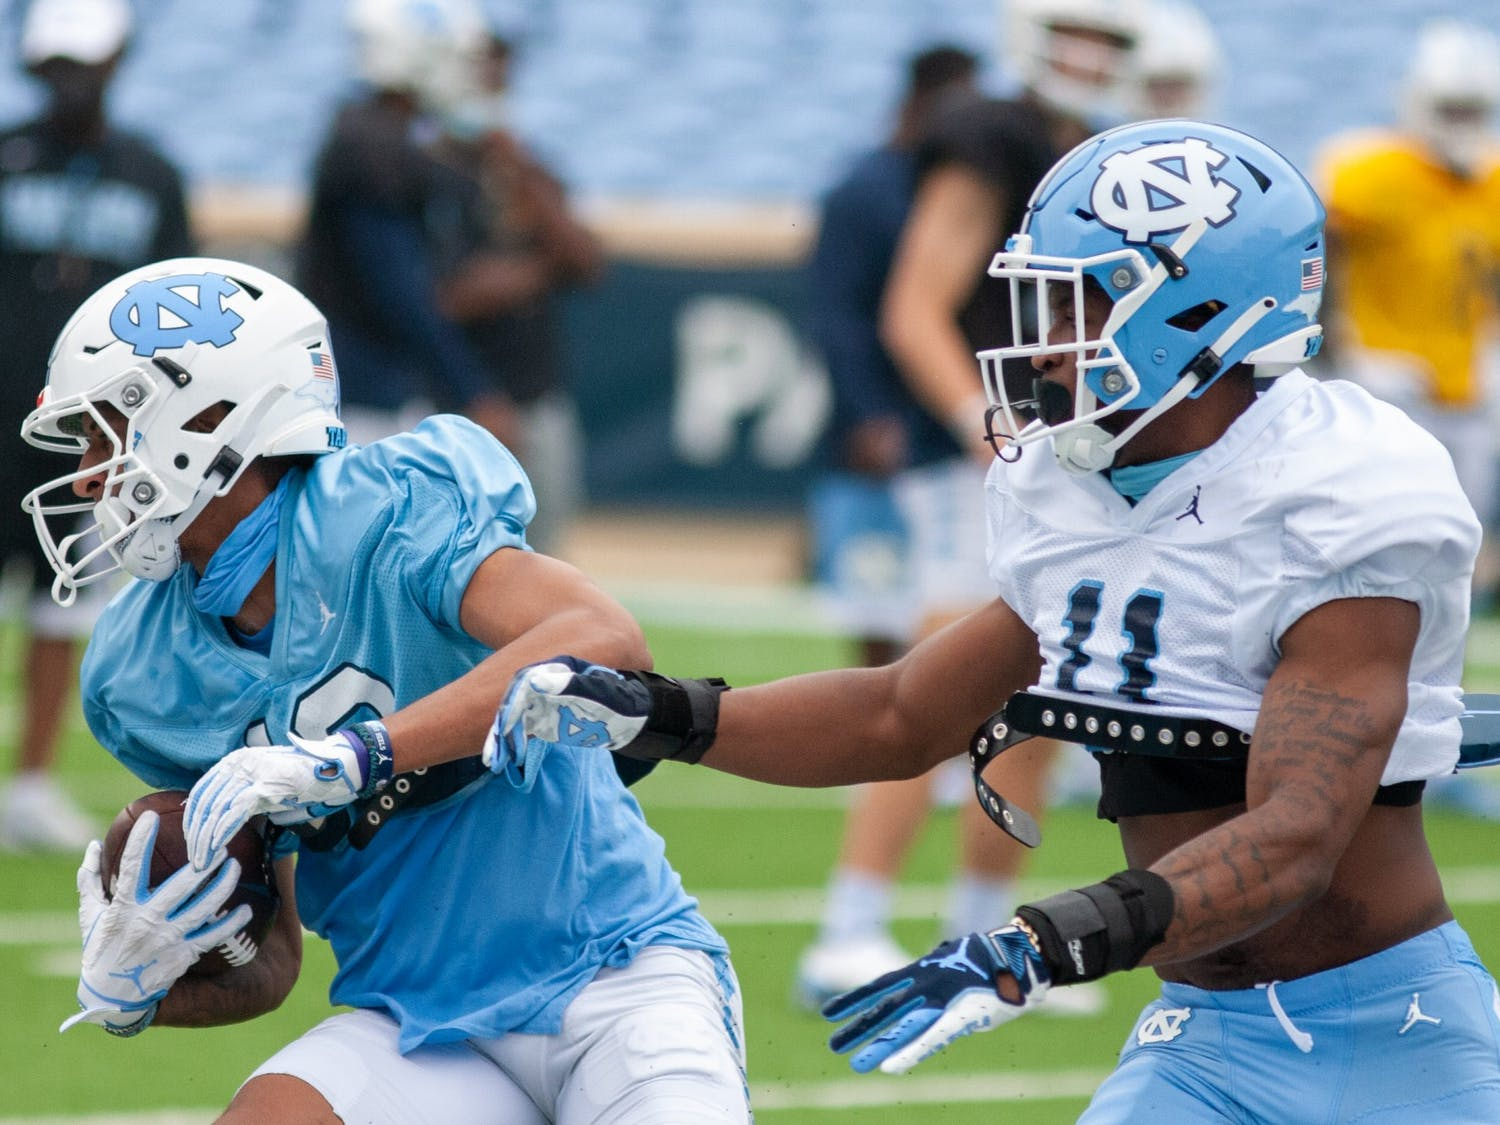 """After the departure of several star players for the NFL draft following the 2020 season, UNC football looks to rebuild and strengthen its younger starters. """"We're real fired up out there,"""" sophomore wide receiver Josh Downs said. """"The energy is crazy. I've never been part of a team with this much energy. If you go out there and you're slow, you're going to get embarrassed. Everybody is giving a hundred."""""""